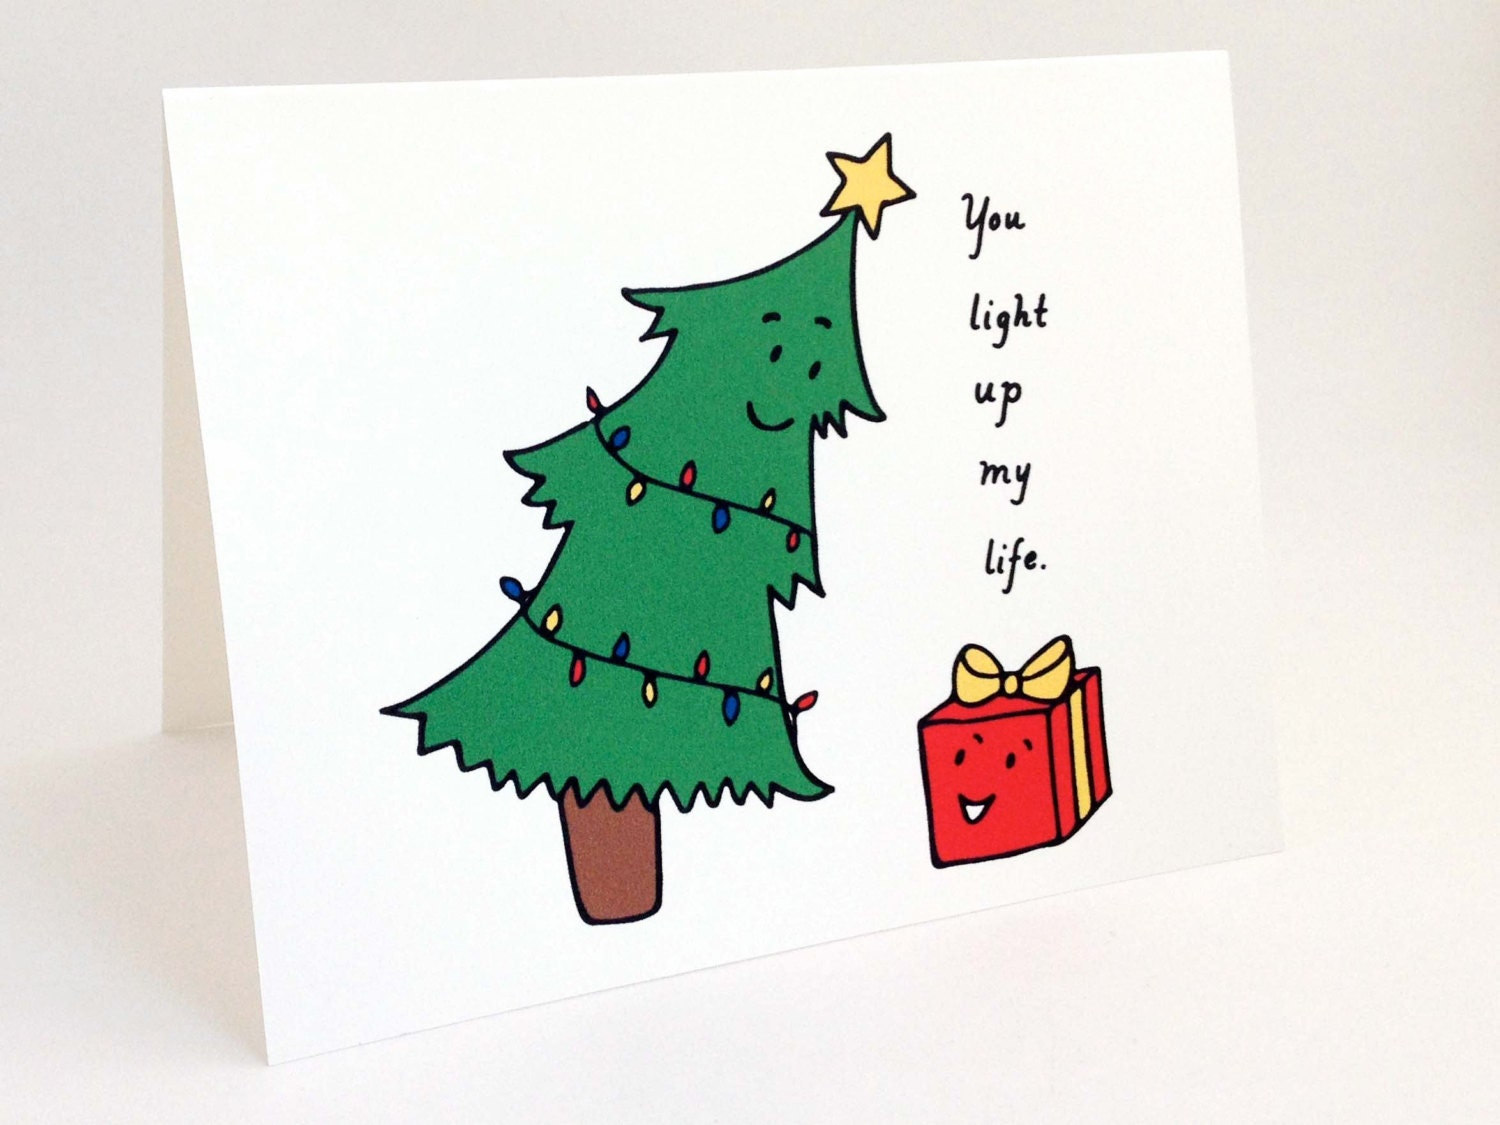 Cute christmas card punny holiday card whimsical description you light up my life cute christmas card m4hsunfo Gallery